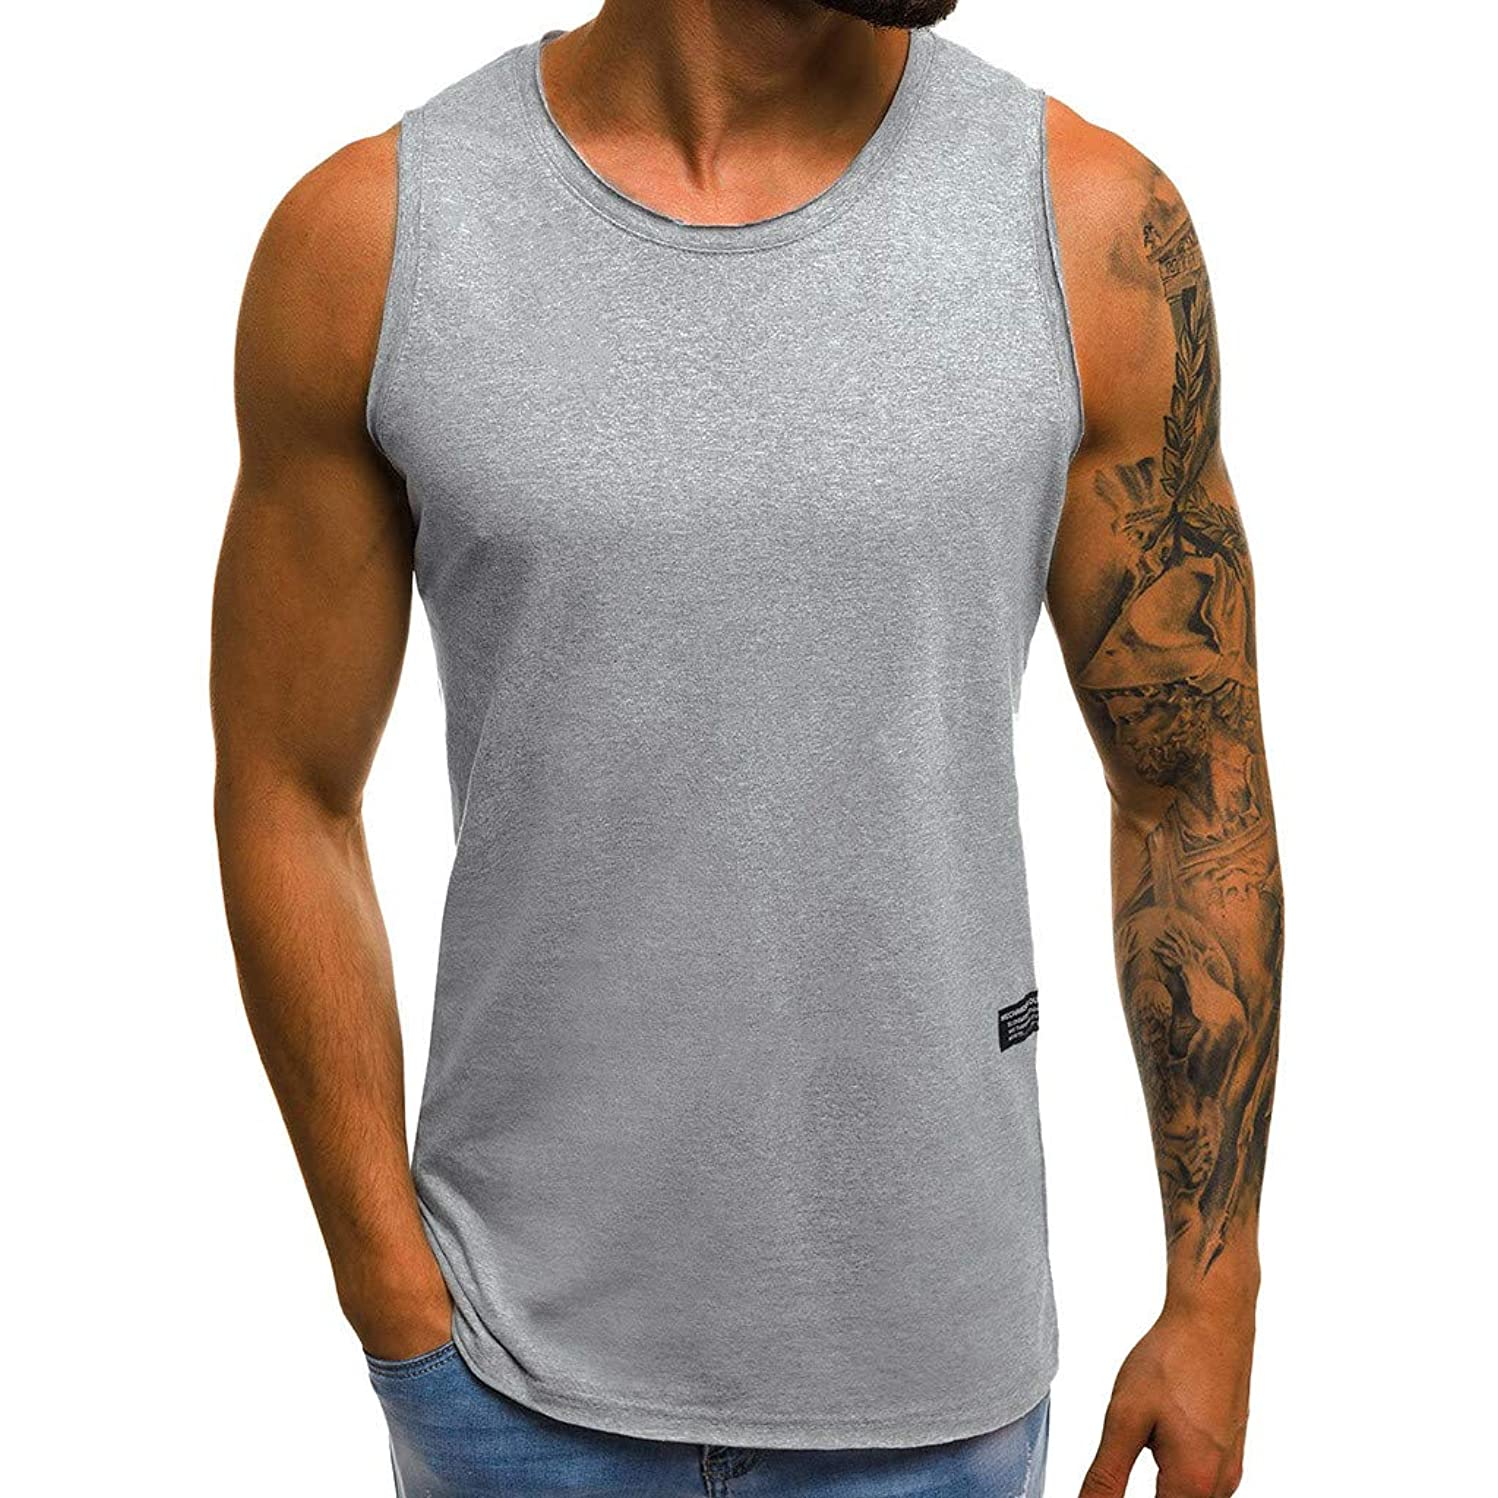 NIKAIRALEY T-Shirt Men's Muscle Gym Workout Stringer Tank Tops Bodybuilding Fitness T-Shirts Sports Running Vest Blouse tees